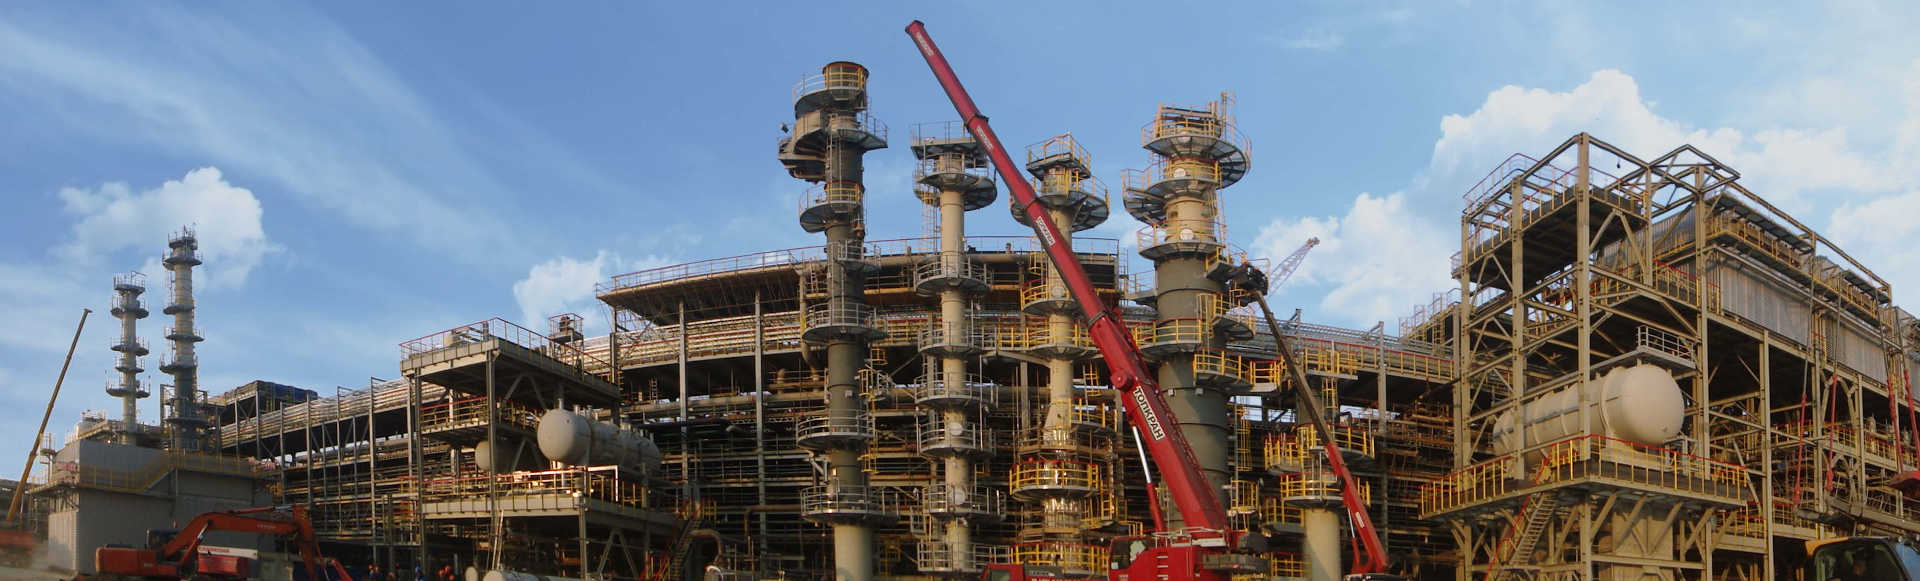 Schwartz Hautmont can provide to a reffinery plant the equipment, columns, platforms, ladders and the steel structure.